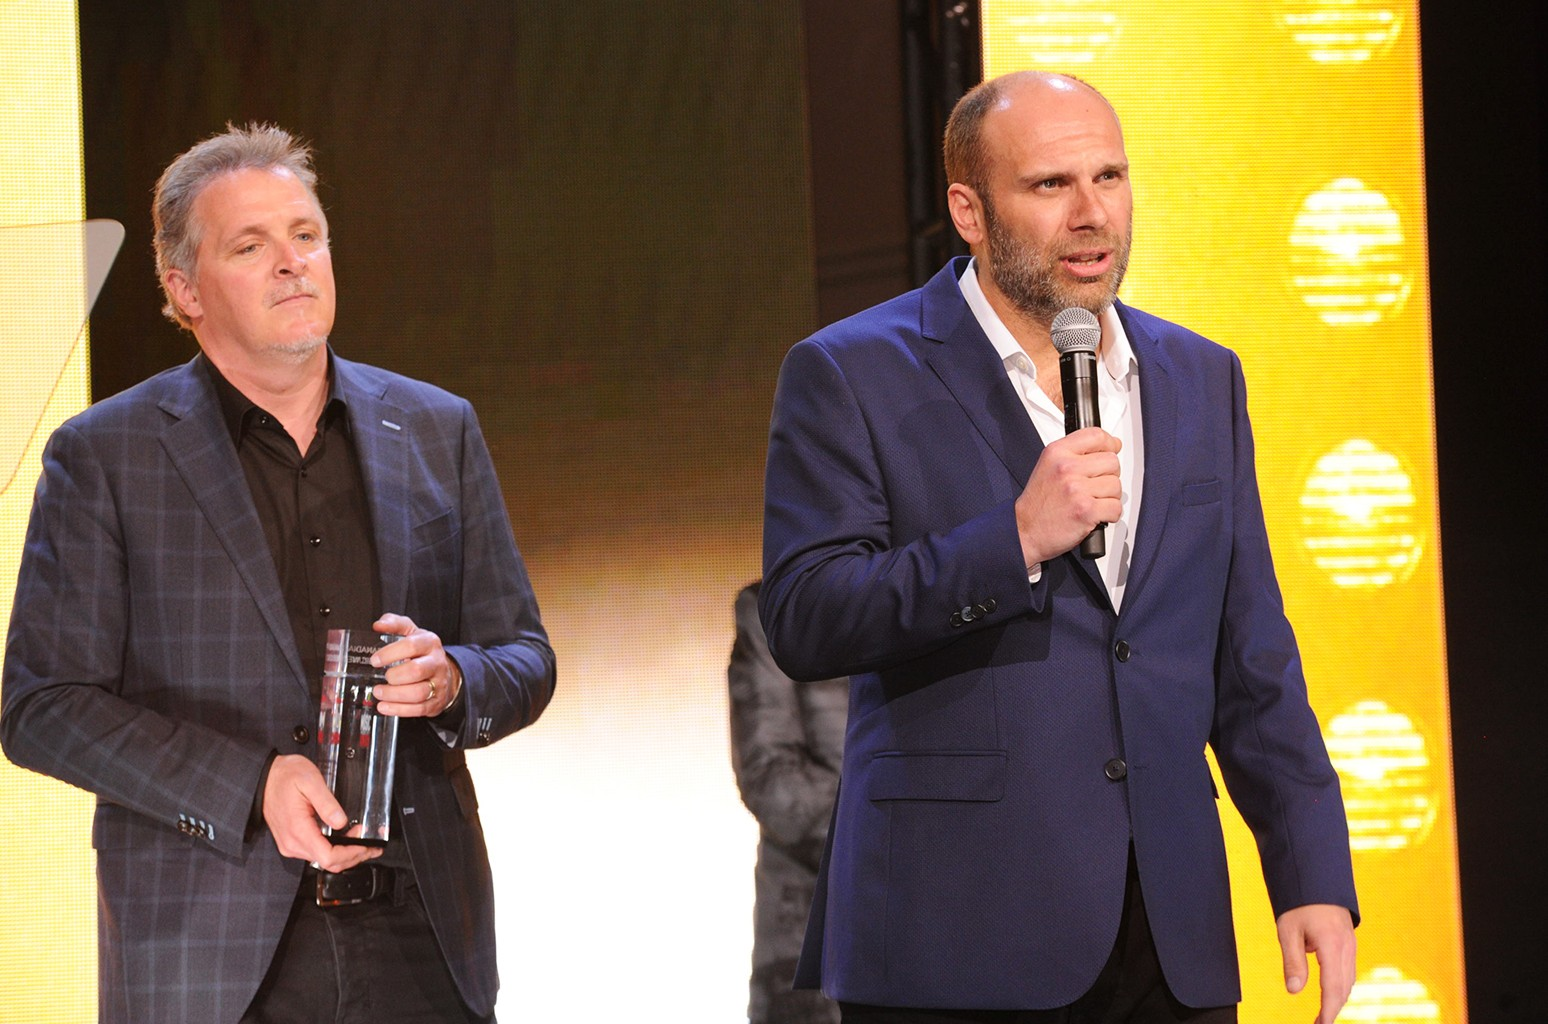 The Tragically Hip managers Bernie Breen and Patrick Sambrook accept the manager of the year award at the Live  Music Industry Awards as part of Canadian Music Week on April 19, 2017.